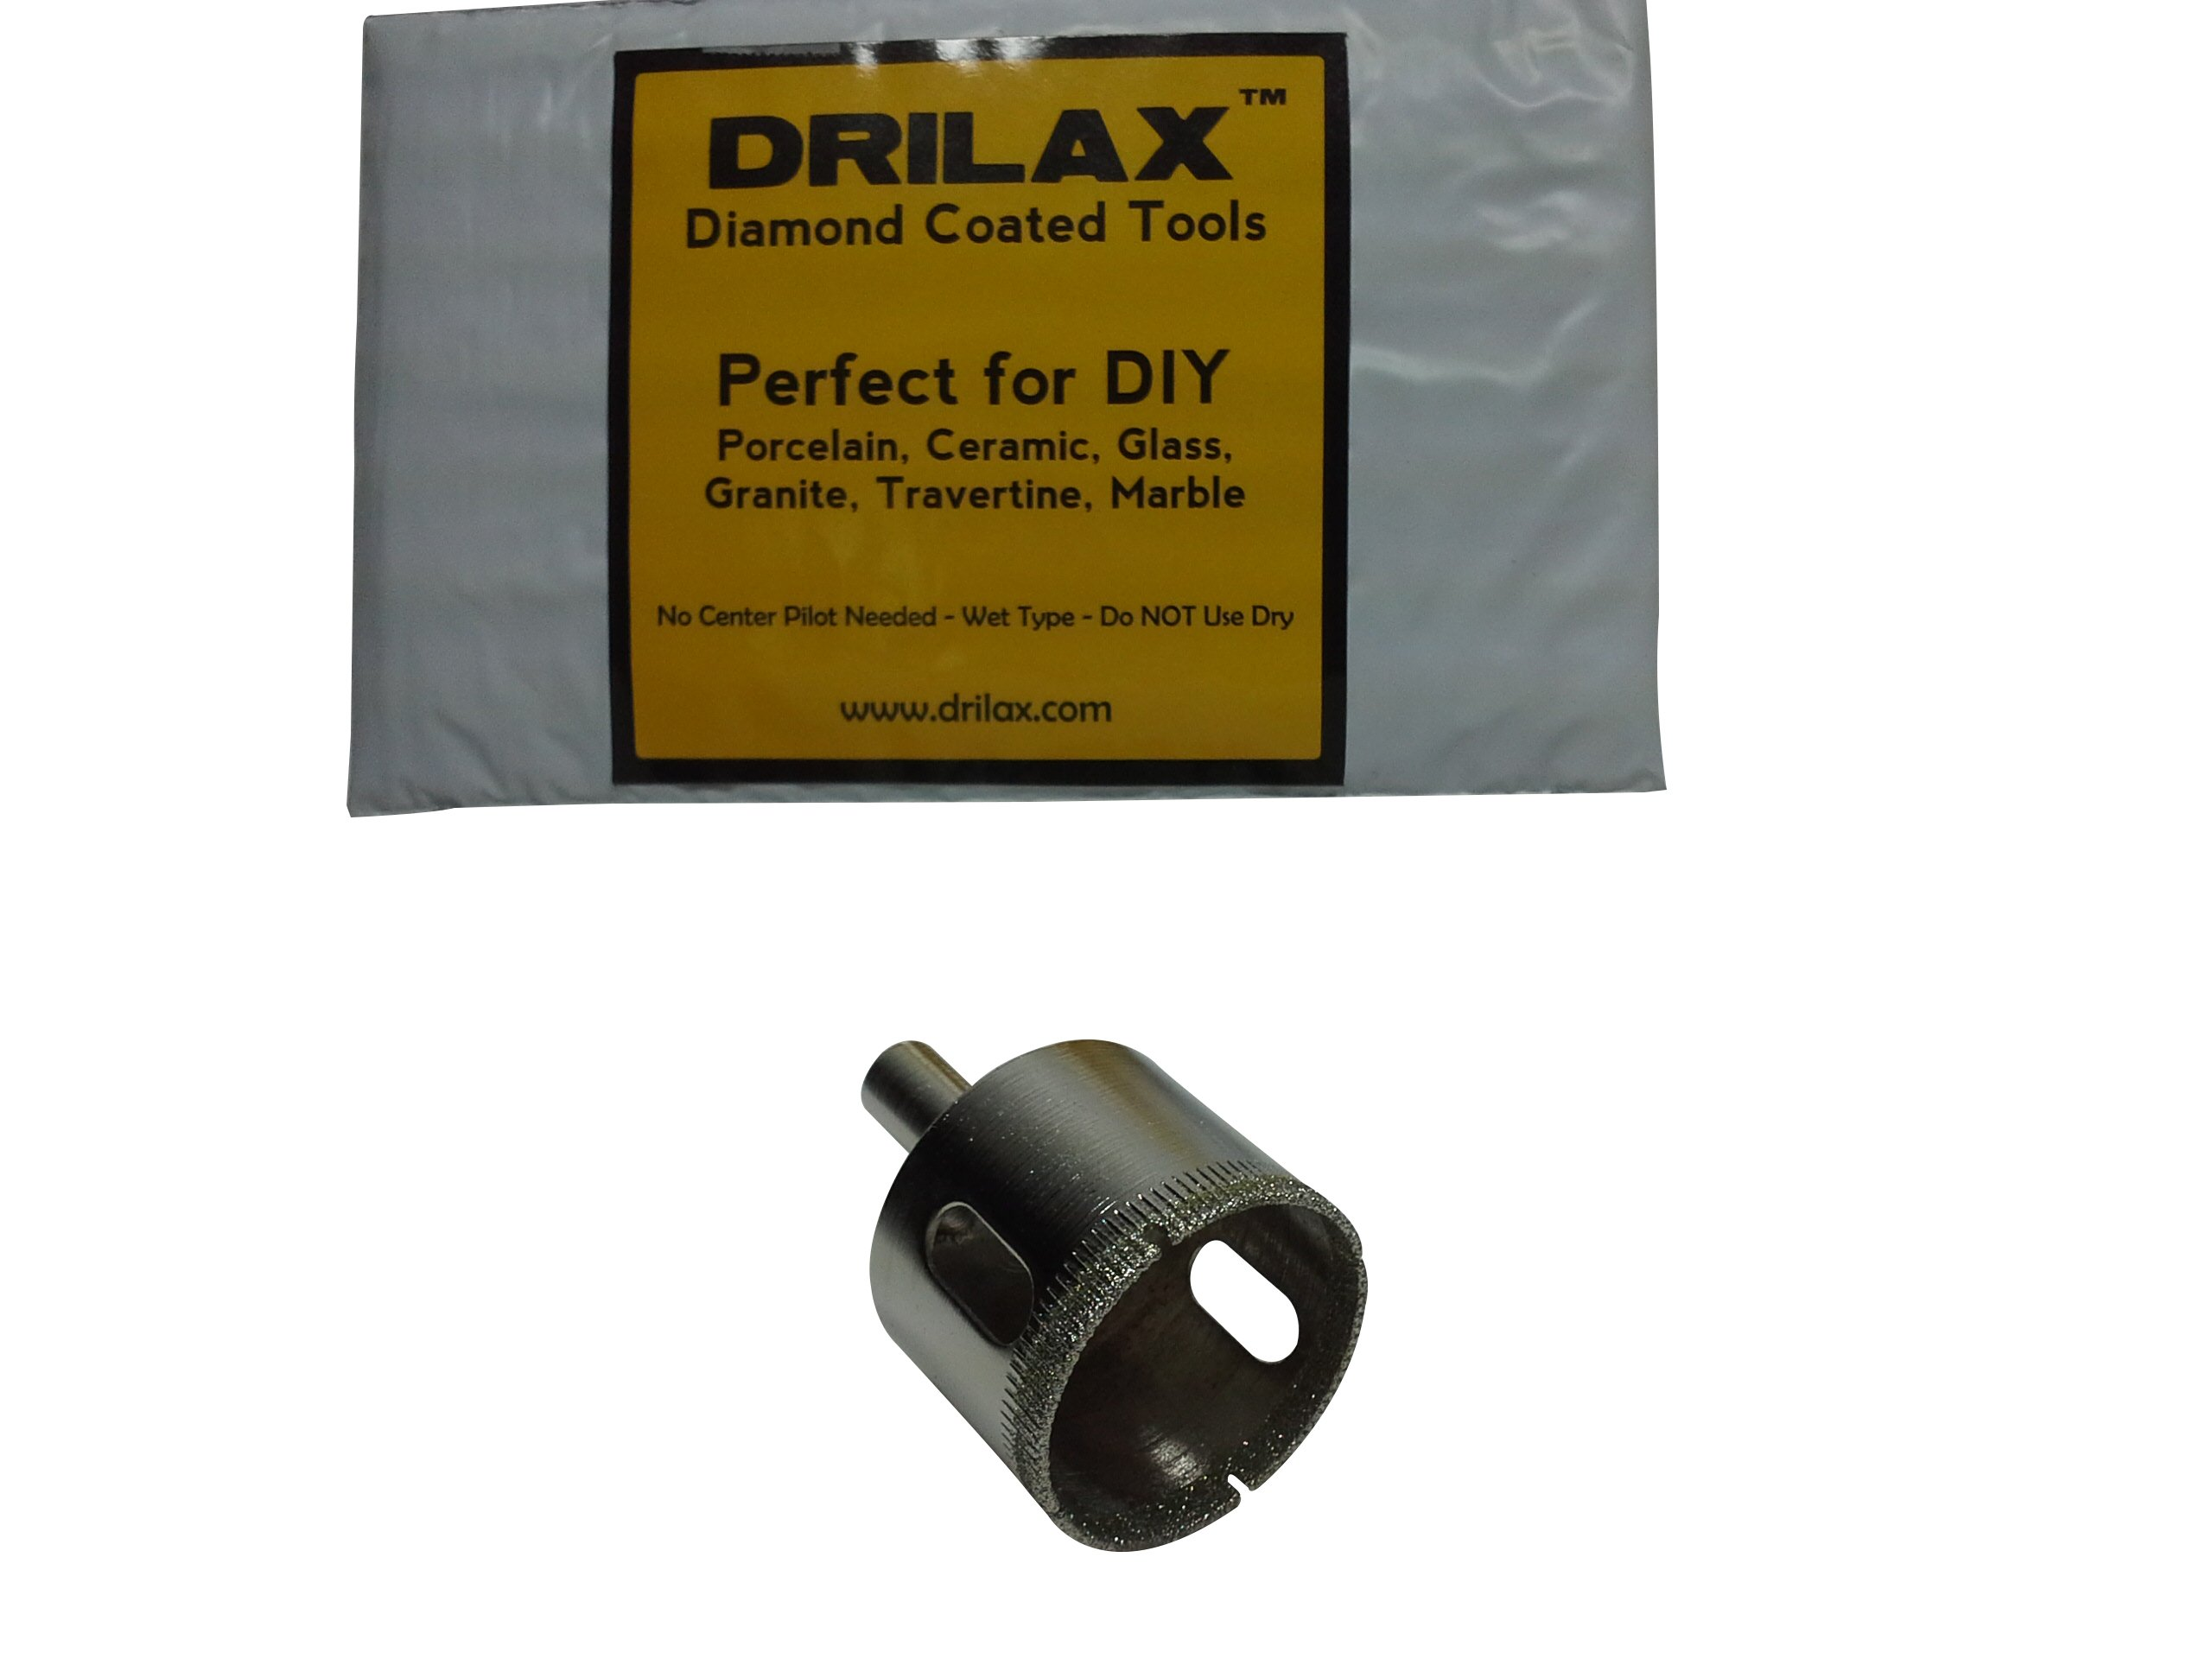 """Drilax 1 5/8 Inch Diamond Hole Saw Drill Bit Tiles, Glass, Fish Tanks, Marble, Granite Countertop, Ceramic, Porcelain, Coated Core Bits Holesaw DIY Kitchen, Bathroom, Shower, Faucet Installation Size 1 5/8"""" Inches"""